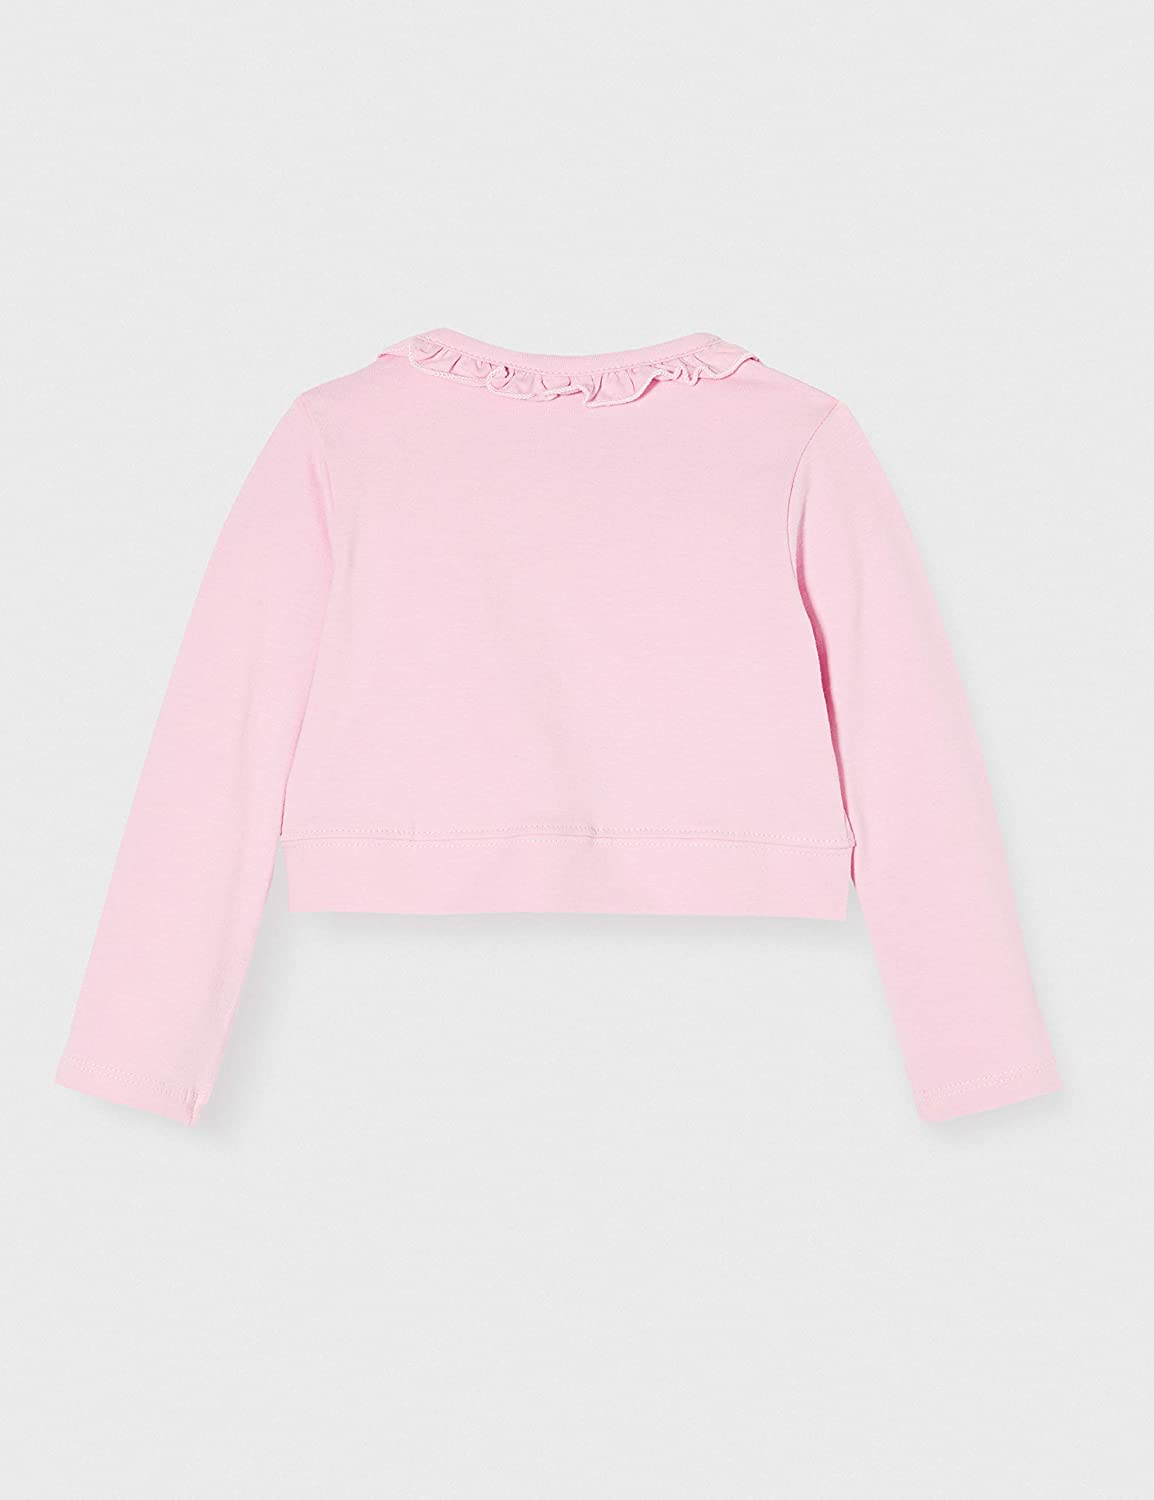 12-18 Months Soft Pink 824 Salt and Pepper Baby/_Girls 03218281 Track Jacket Pink